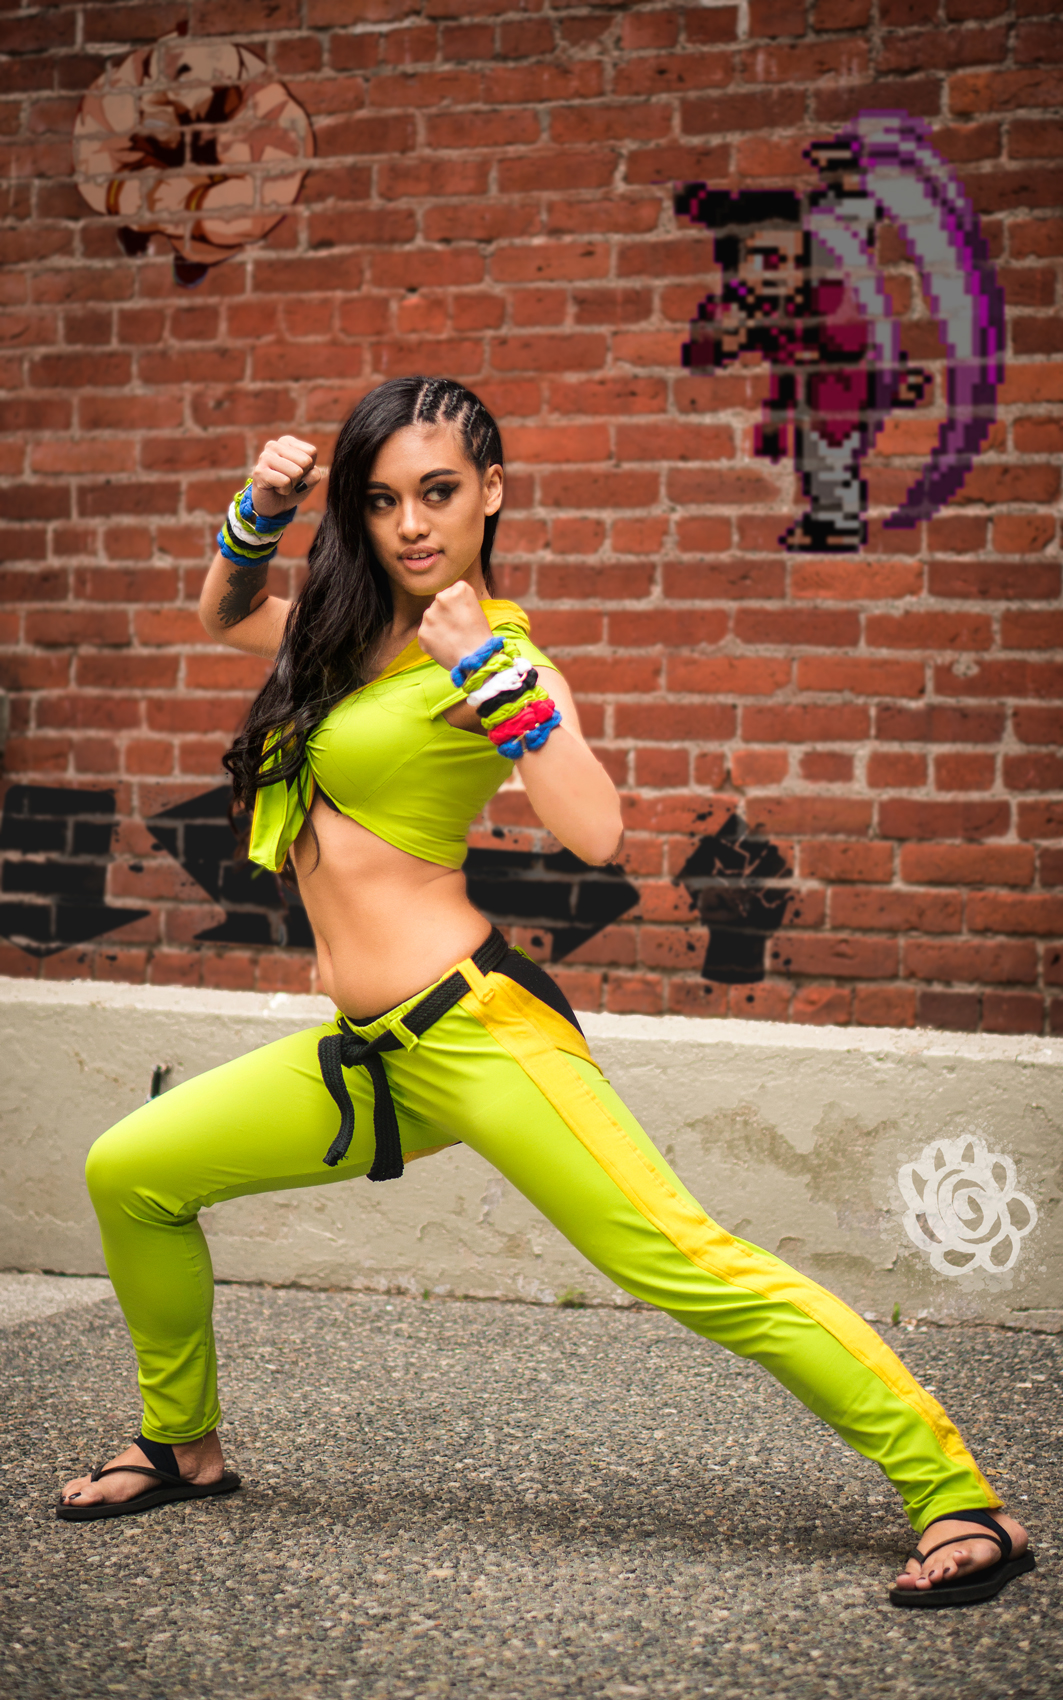 Lunar Crow Laura Street Fighter